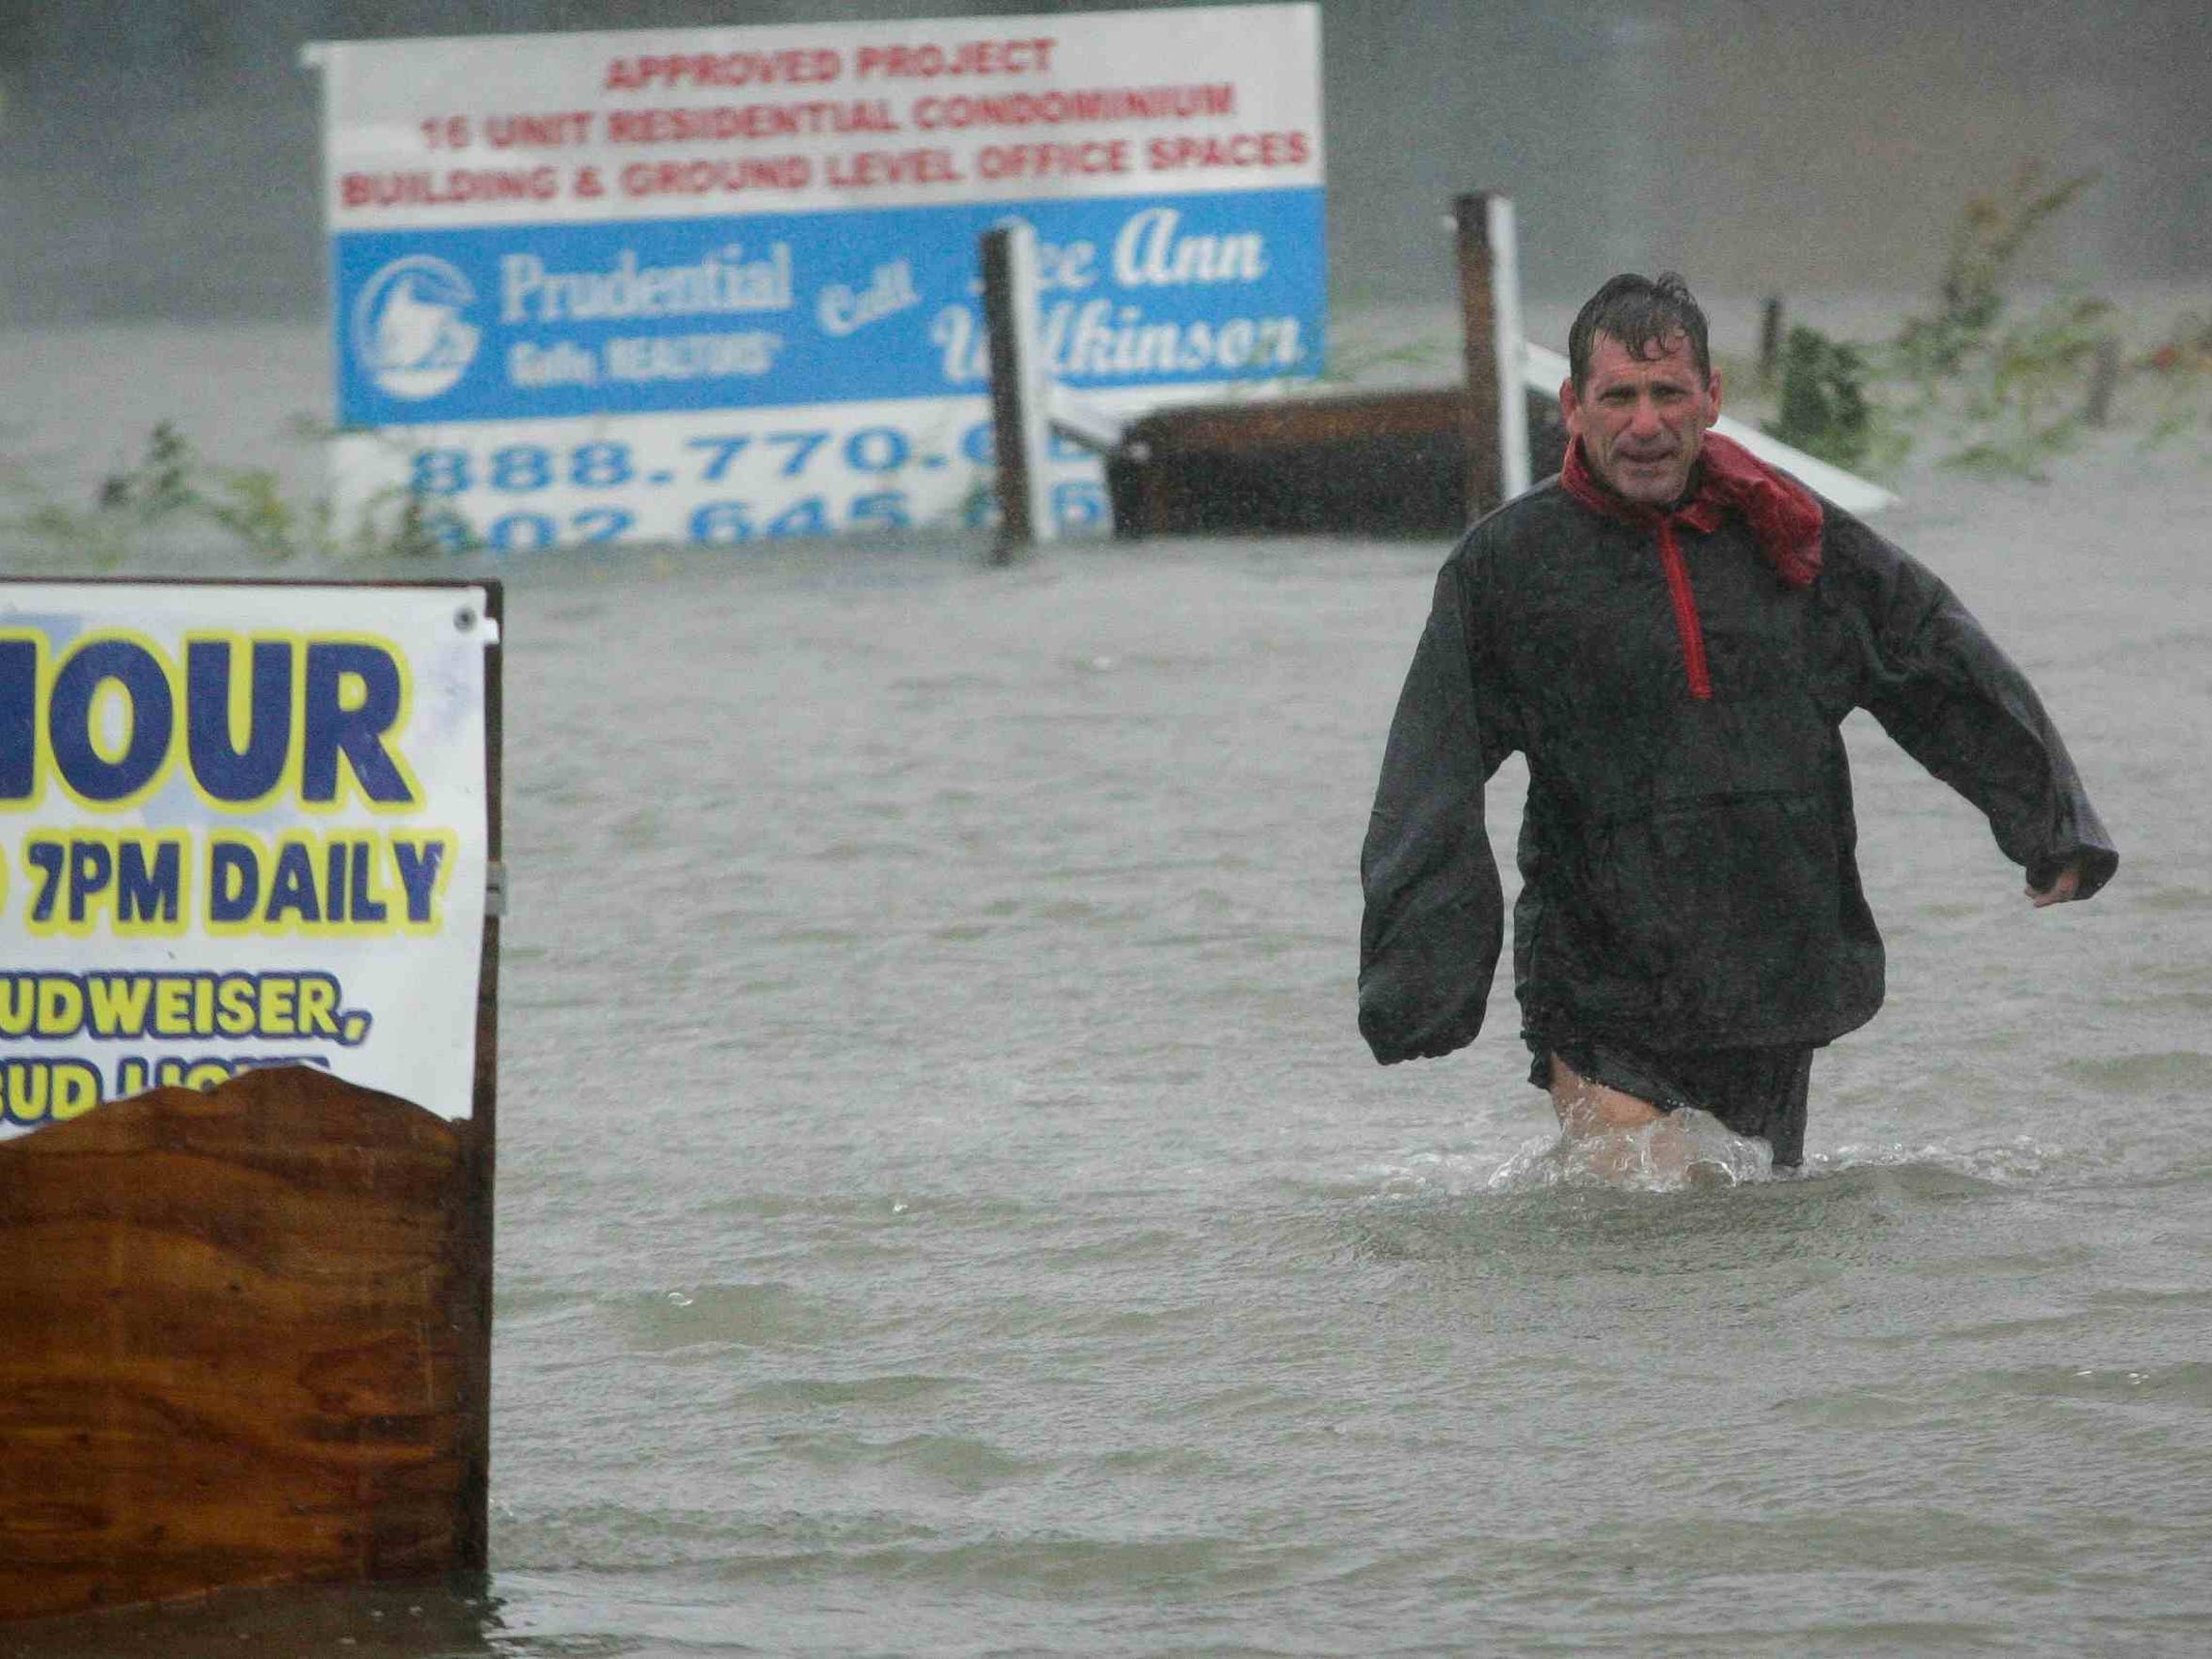 Bob Casseday crosses a flooded street in Lewes on his way home after checking his boat line on Monday. SUCHAT PEDERSON/THE NEWS JOURNAL 10/29/12 - Lewes, Del. - DE SANDY2012 102912 - After checking to make sure his boat line is secure, Bob Casseday crosses the waist high flooded street just over the bridge along Savannah Road in Lewes to get back home as Superstorm Sandy hits Delaware Monday, Oct. 29, 2012.     SUCHAT PEDERSON/THE NEWS JOURNAL